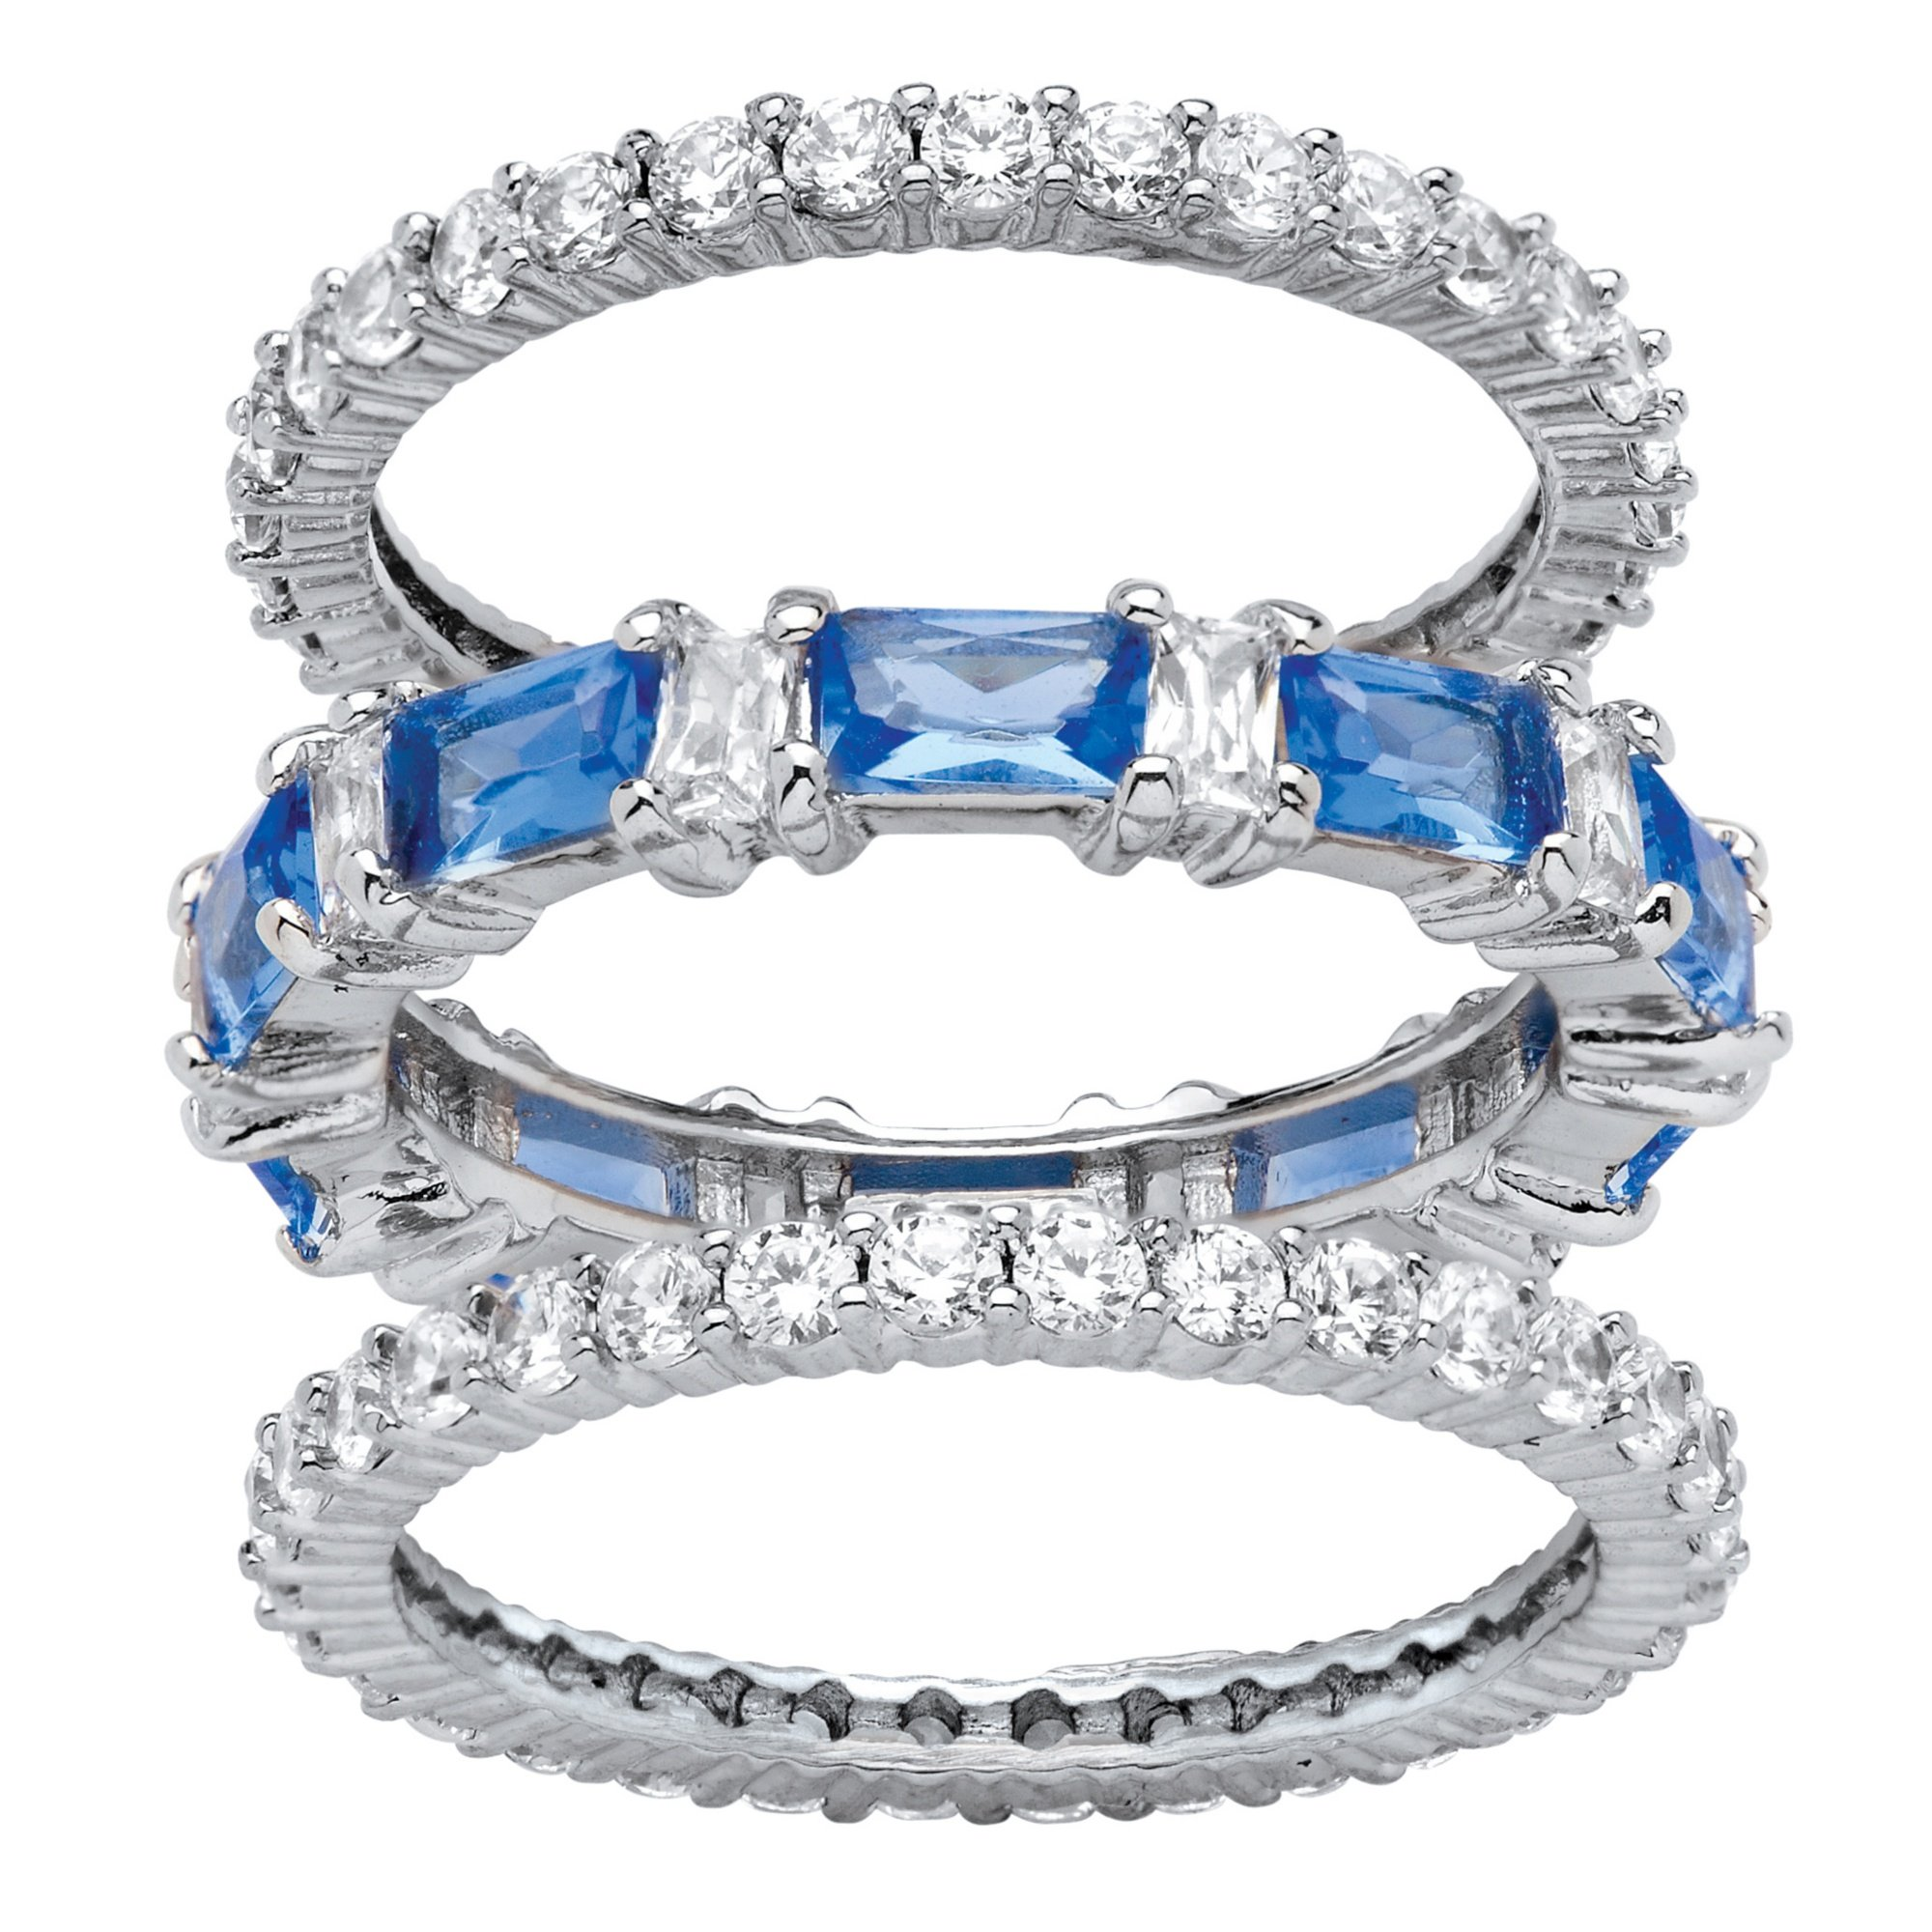 Palm Beach Jewelry Platinum Plated Emerald Cut Simulated Blue Sapphire and Baguette Cubic Zirconia Stackable 3 Piece Set Eternity Ring Size 8 by Palm Beach Jewelry